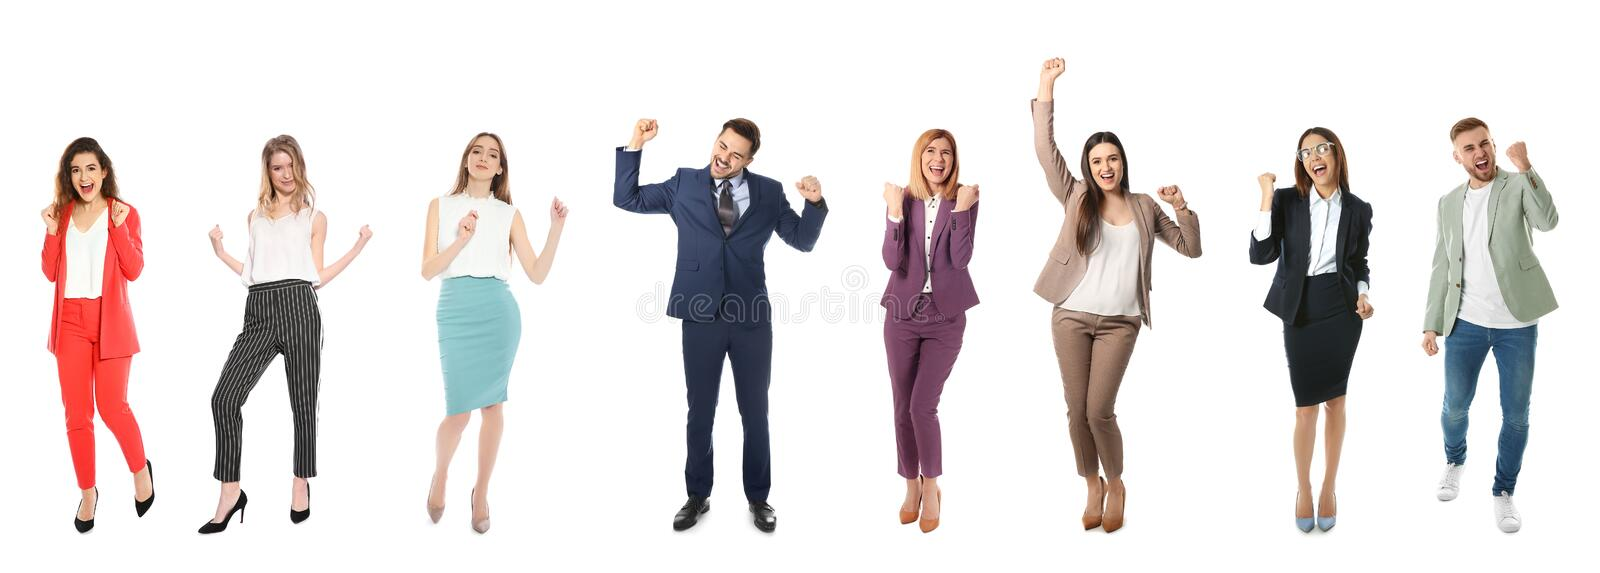 Collage of emotional people on white background royalty free stock photography